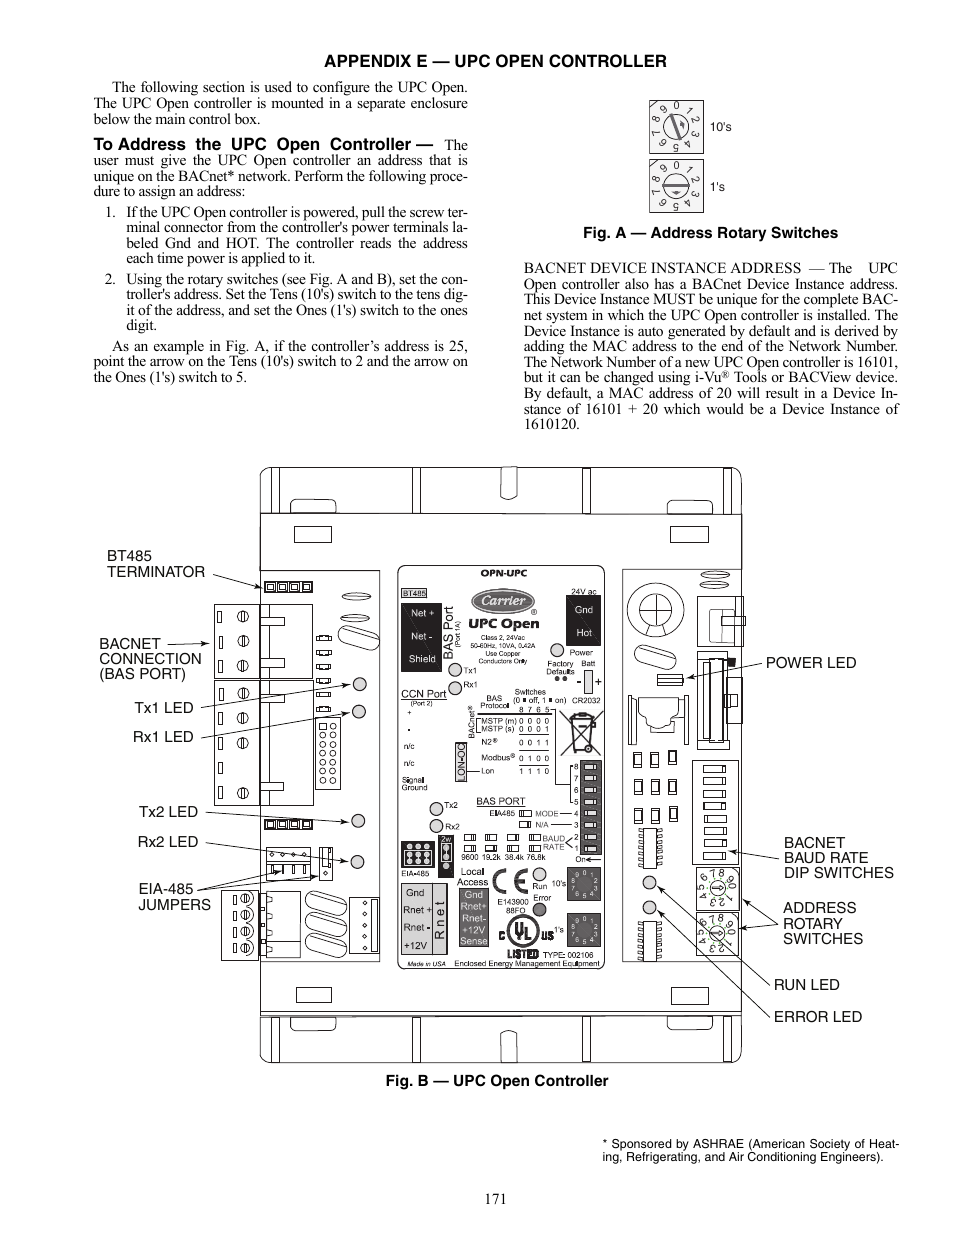 Appendix E Upc Open Controller Carrier Weathermaker 48 50aj User Dip Rotary Switch Wiring Diagram Manual Page 171 190